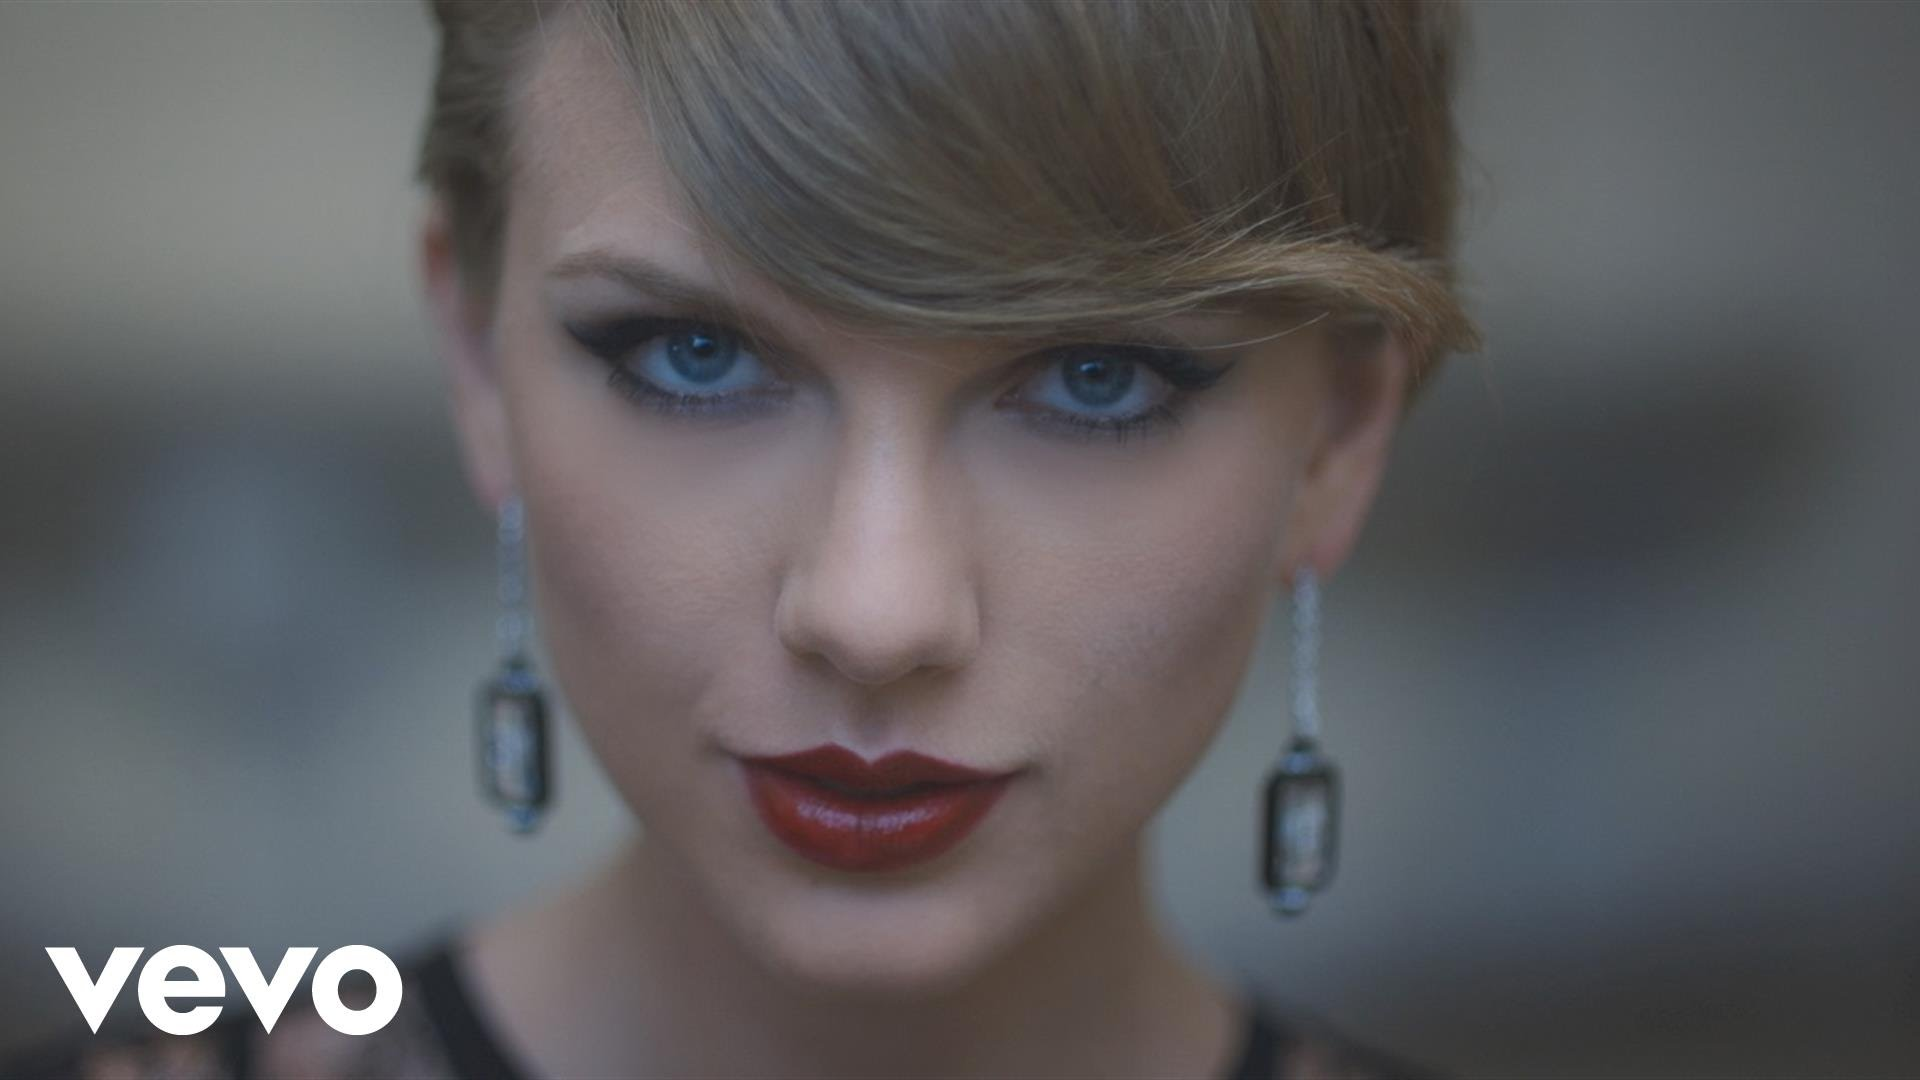 Top 5 best Taylor Swift songs from '1989' - AXS